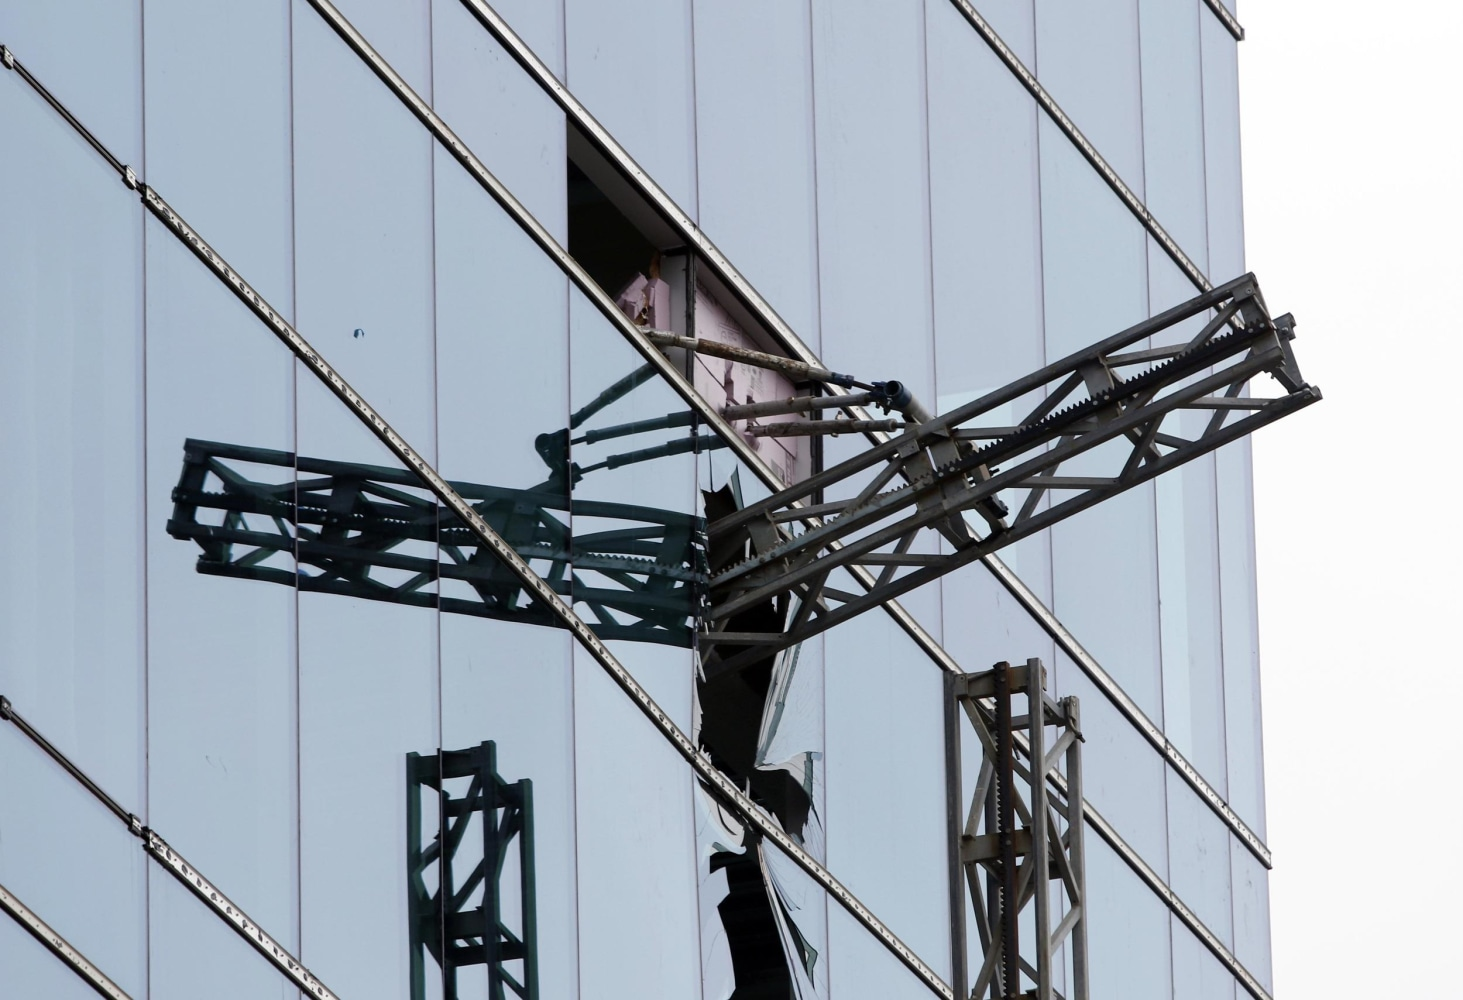 three killed one in serious condition after north carolina a section of scaffolding protrudes from a shattered window at the scene of a construction accident that killed three people and sent another to a hospital